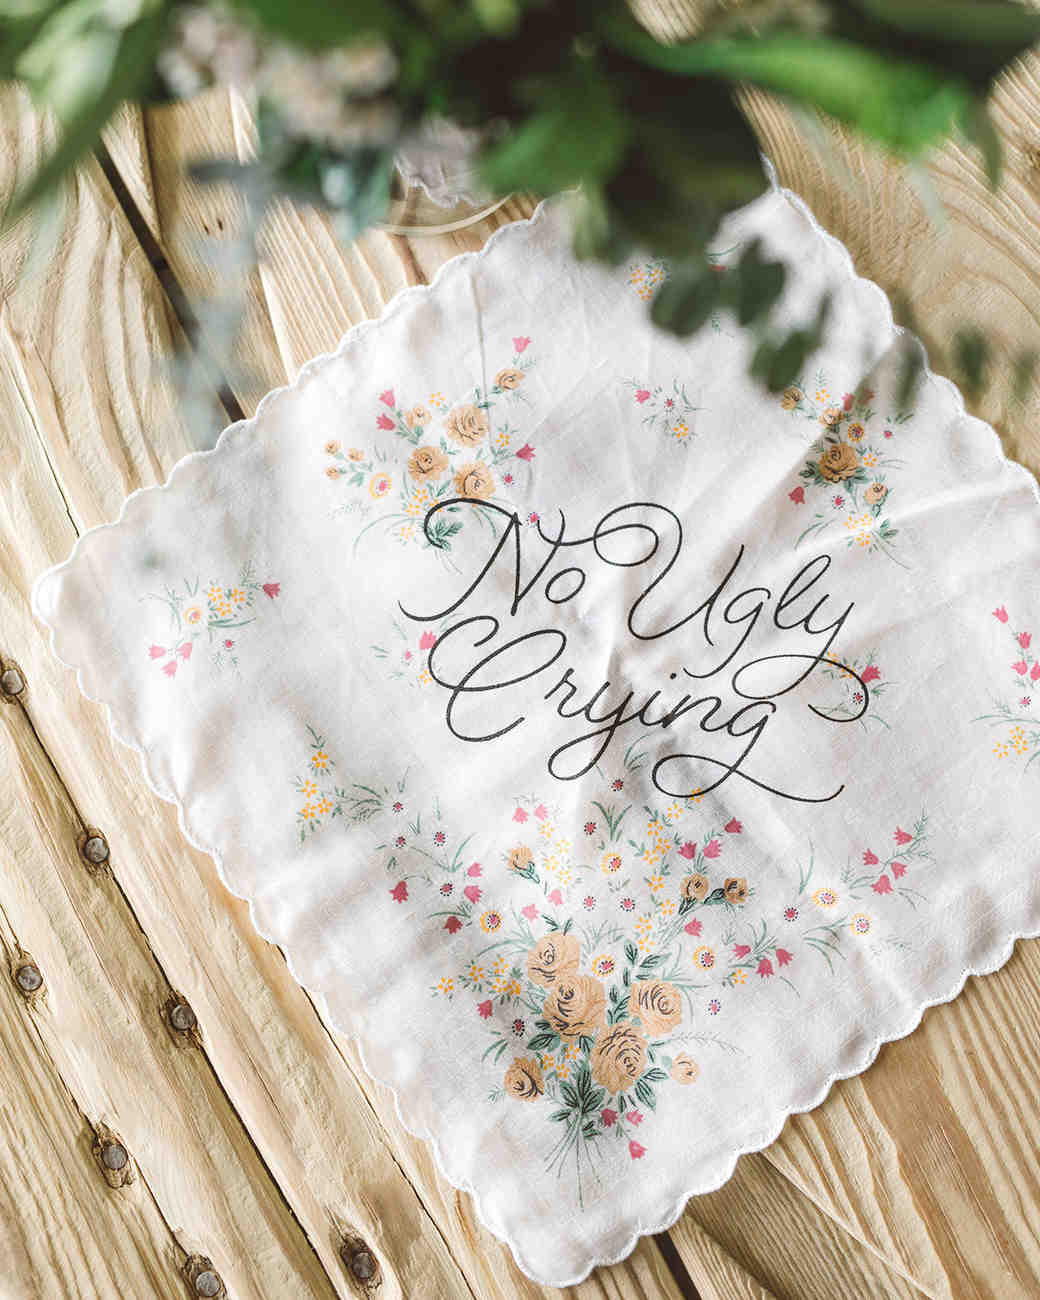 scalloped wedding decor no ugly crying handkerchief